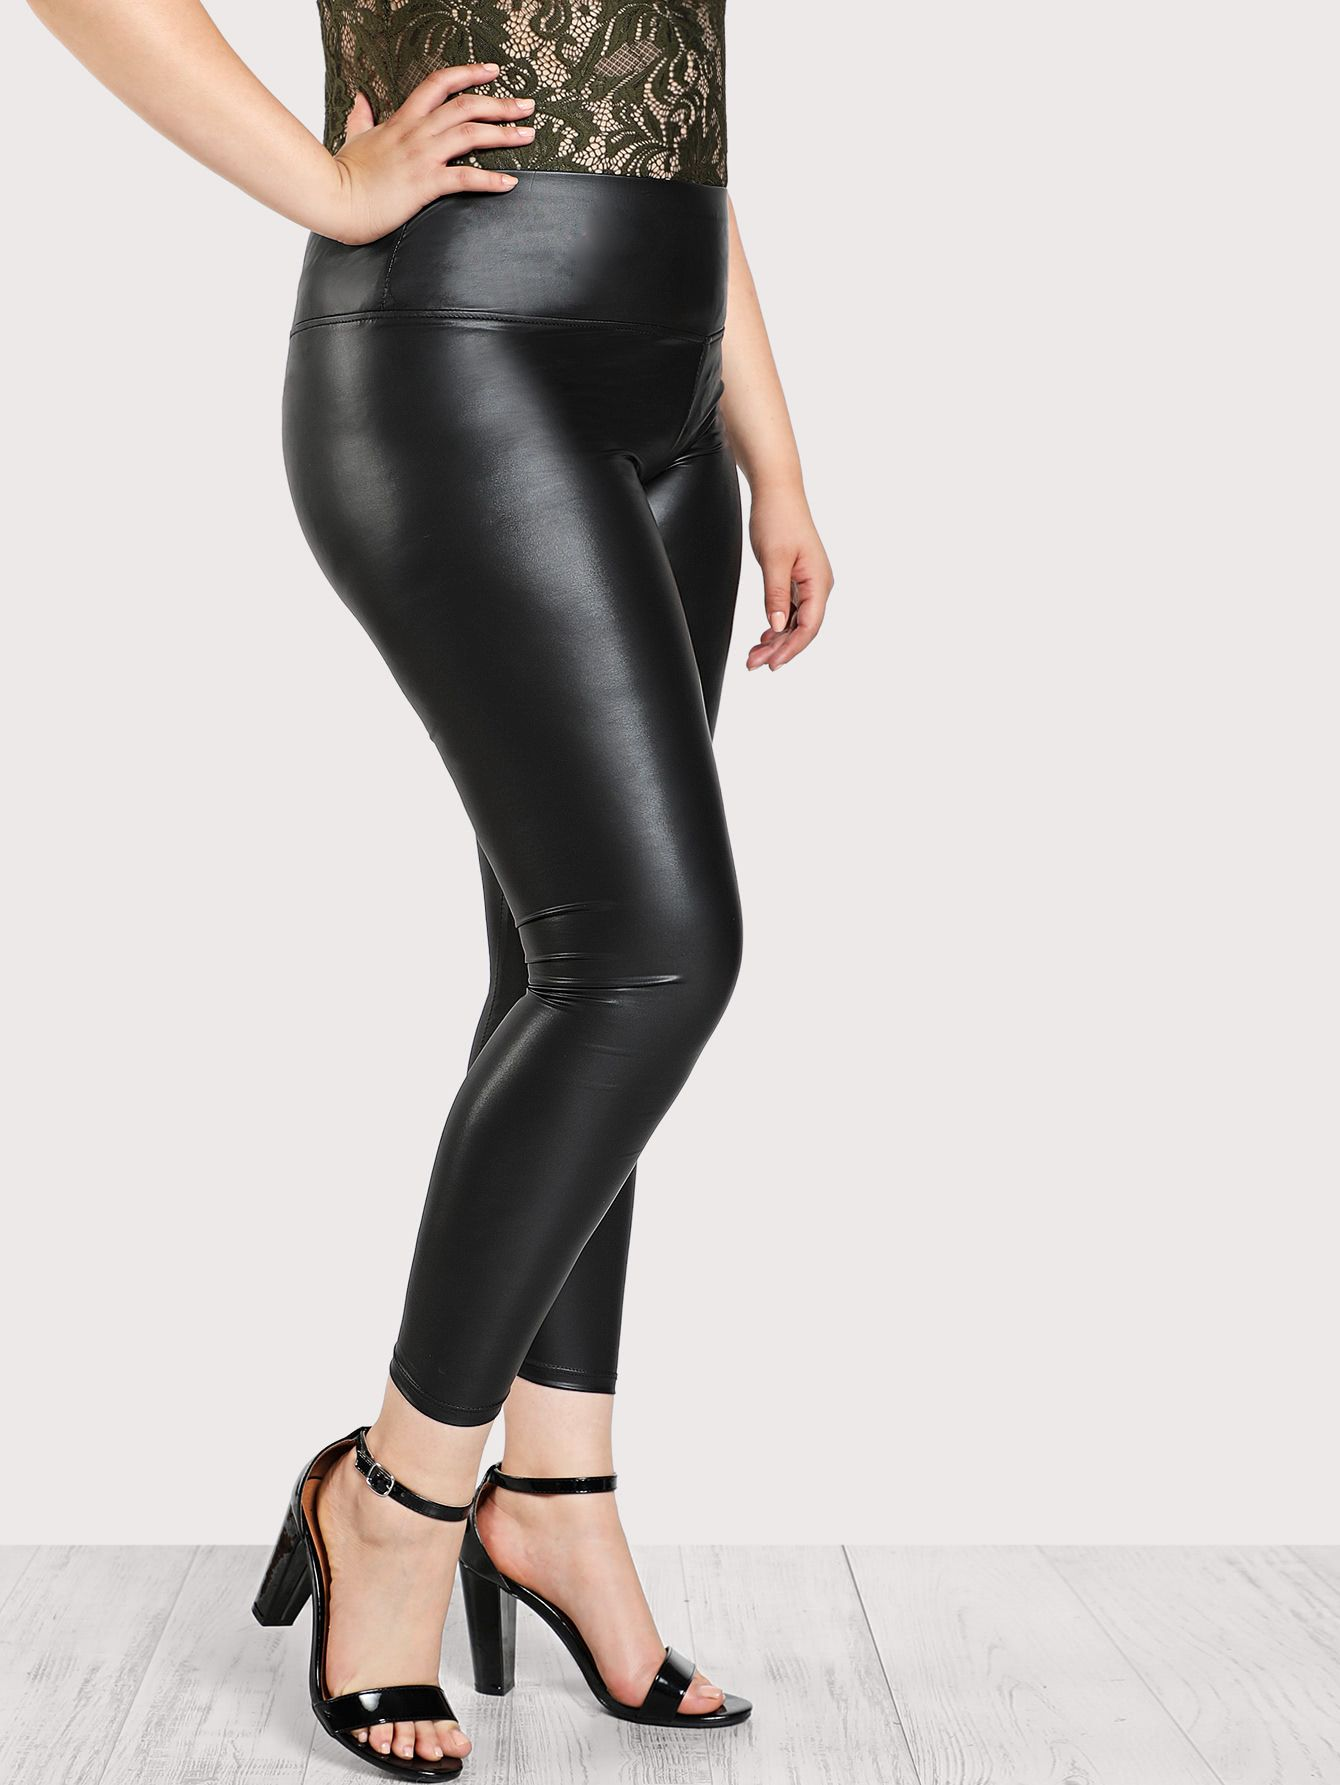 bffbda5a71 Wide Waistband Coated Leggings -SheIn(Sheinside) | dress well ...